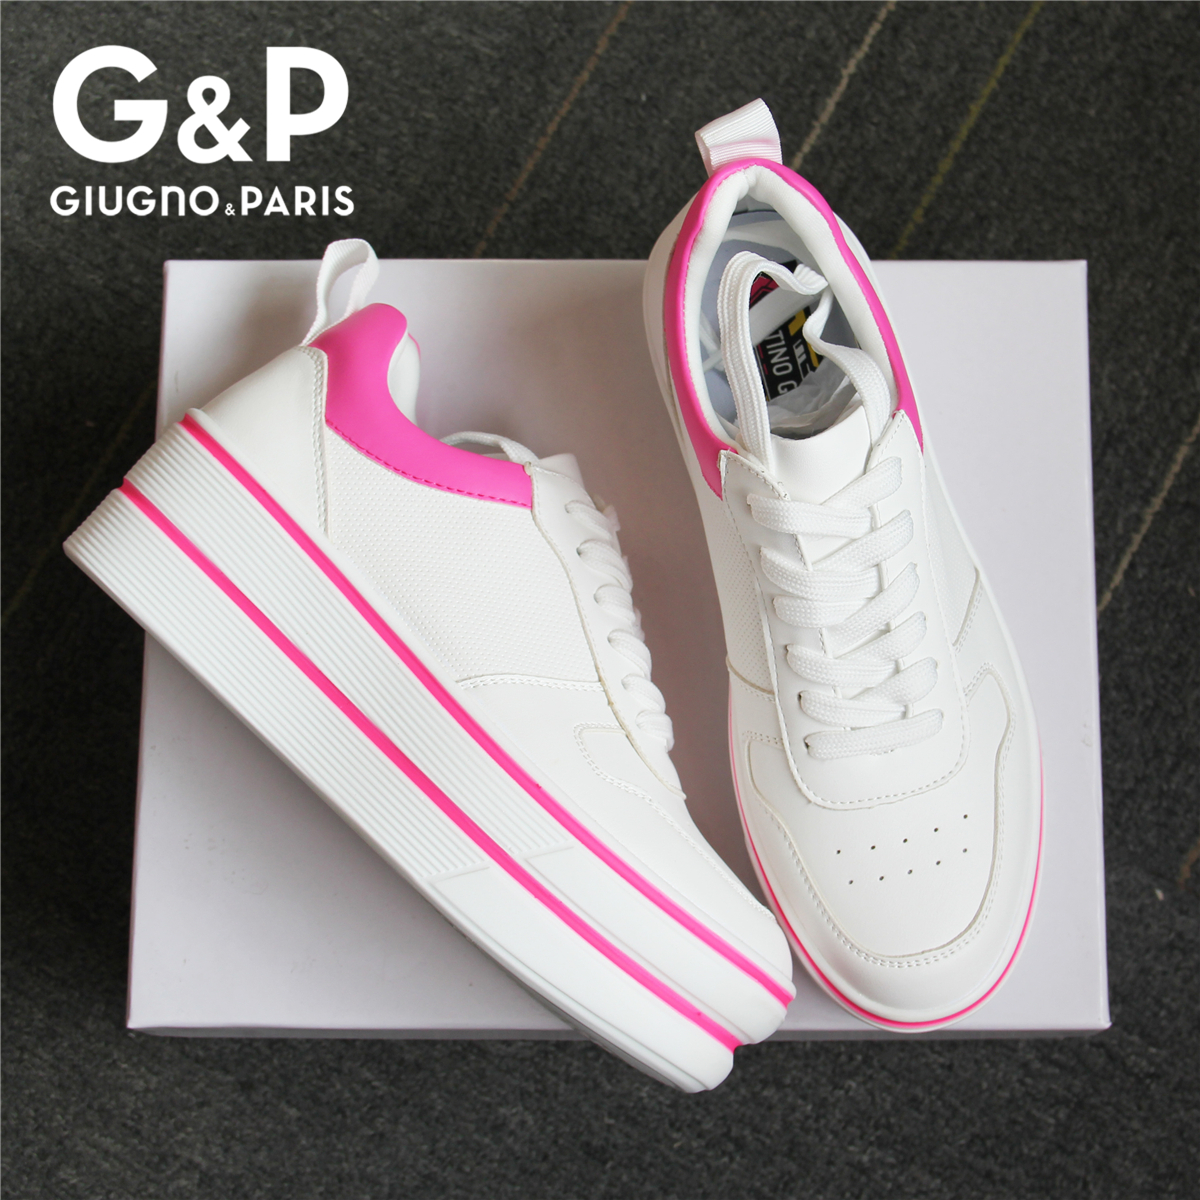 2020 Spring Sneakers Brand Design Women Shoes High Platform Fashion Woman New Casual Style